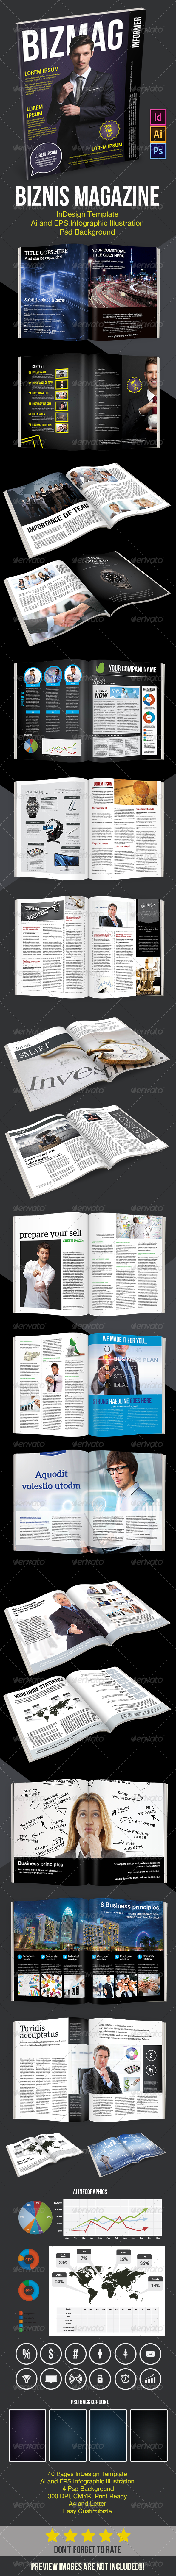 GraphicRiver Bussines Magazine Template 8597065